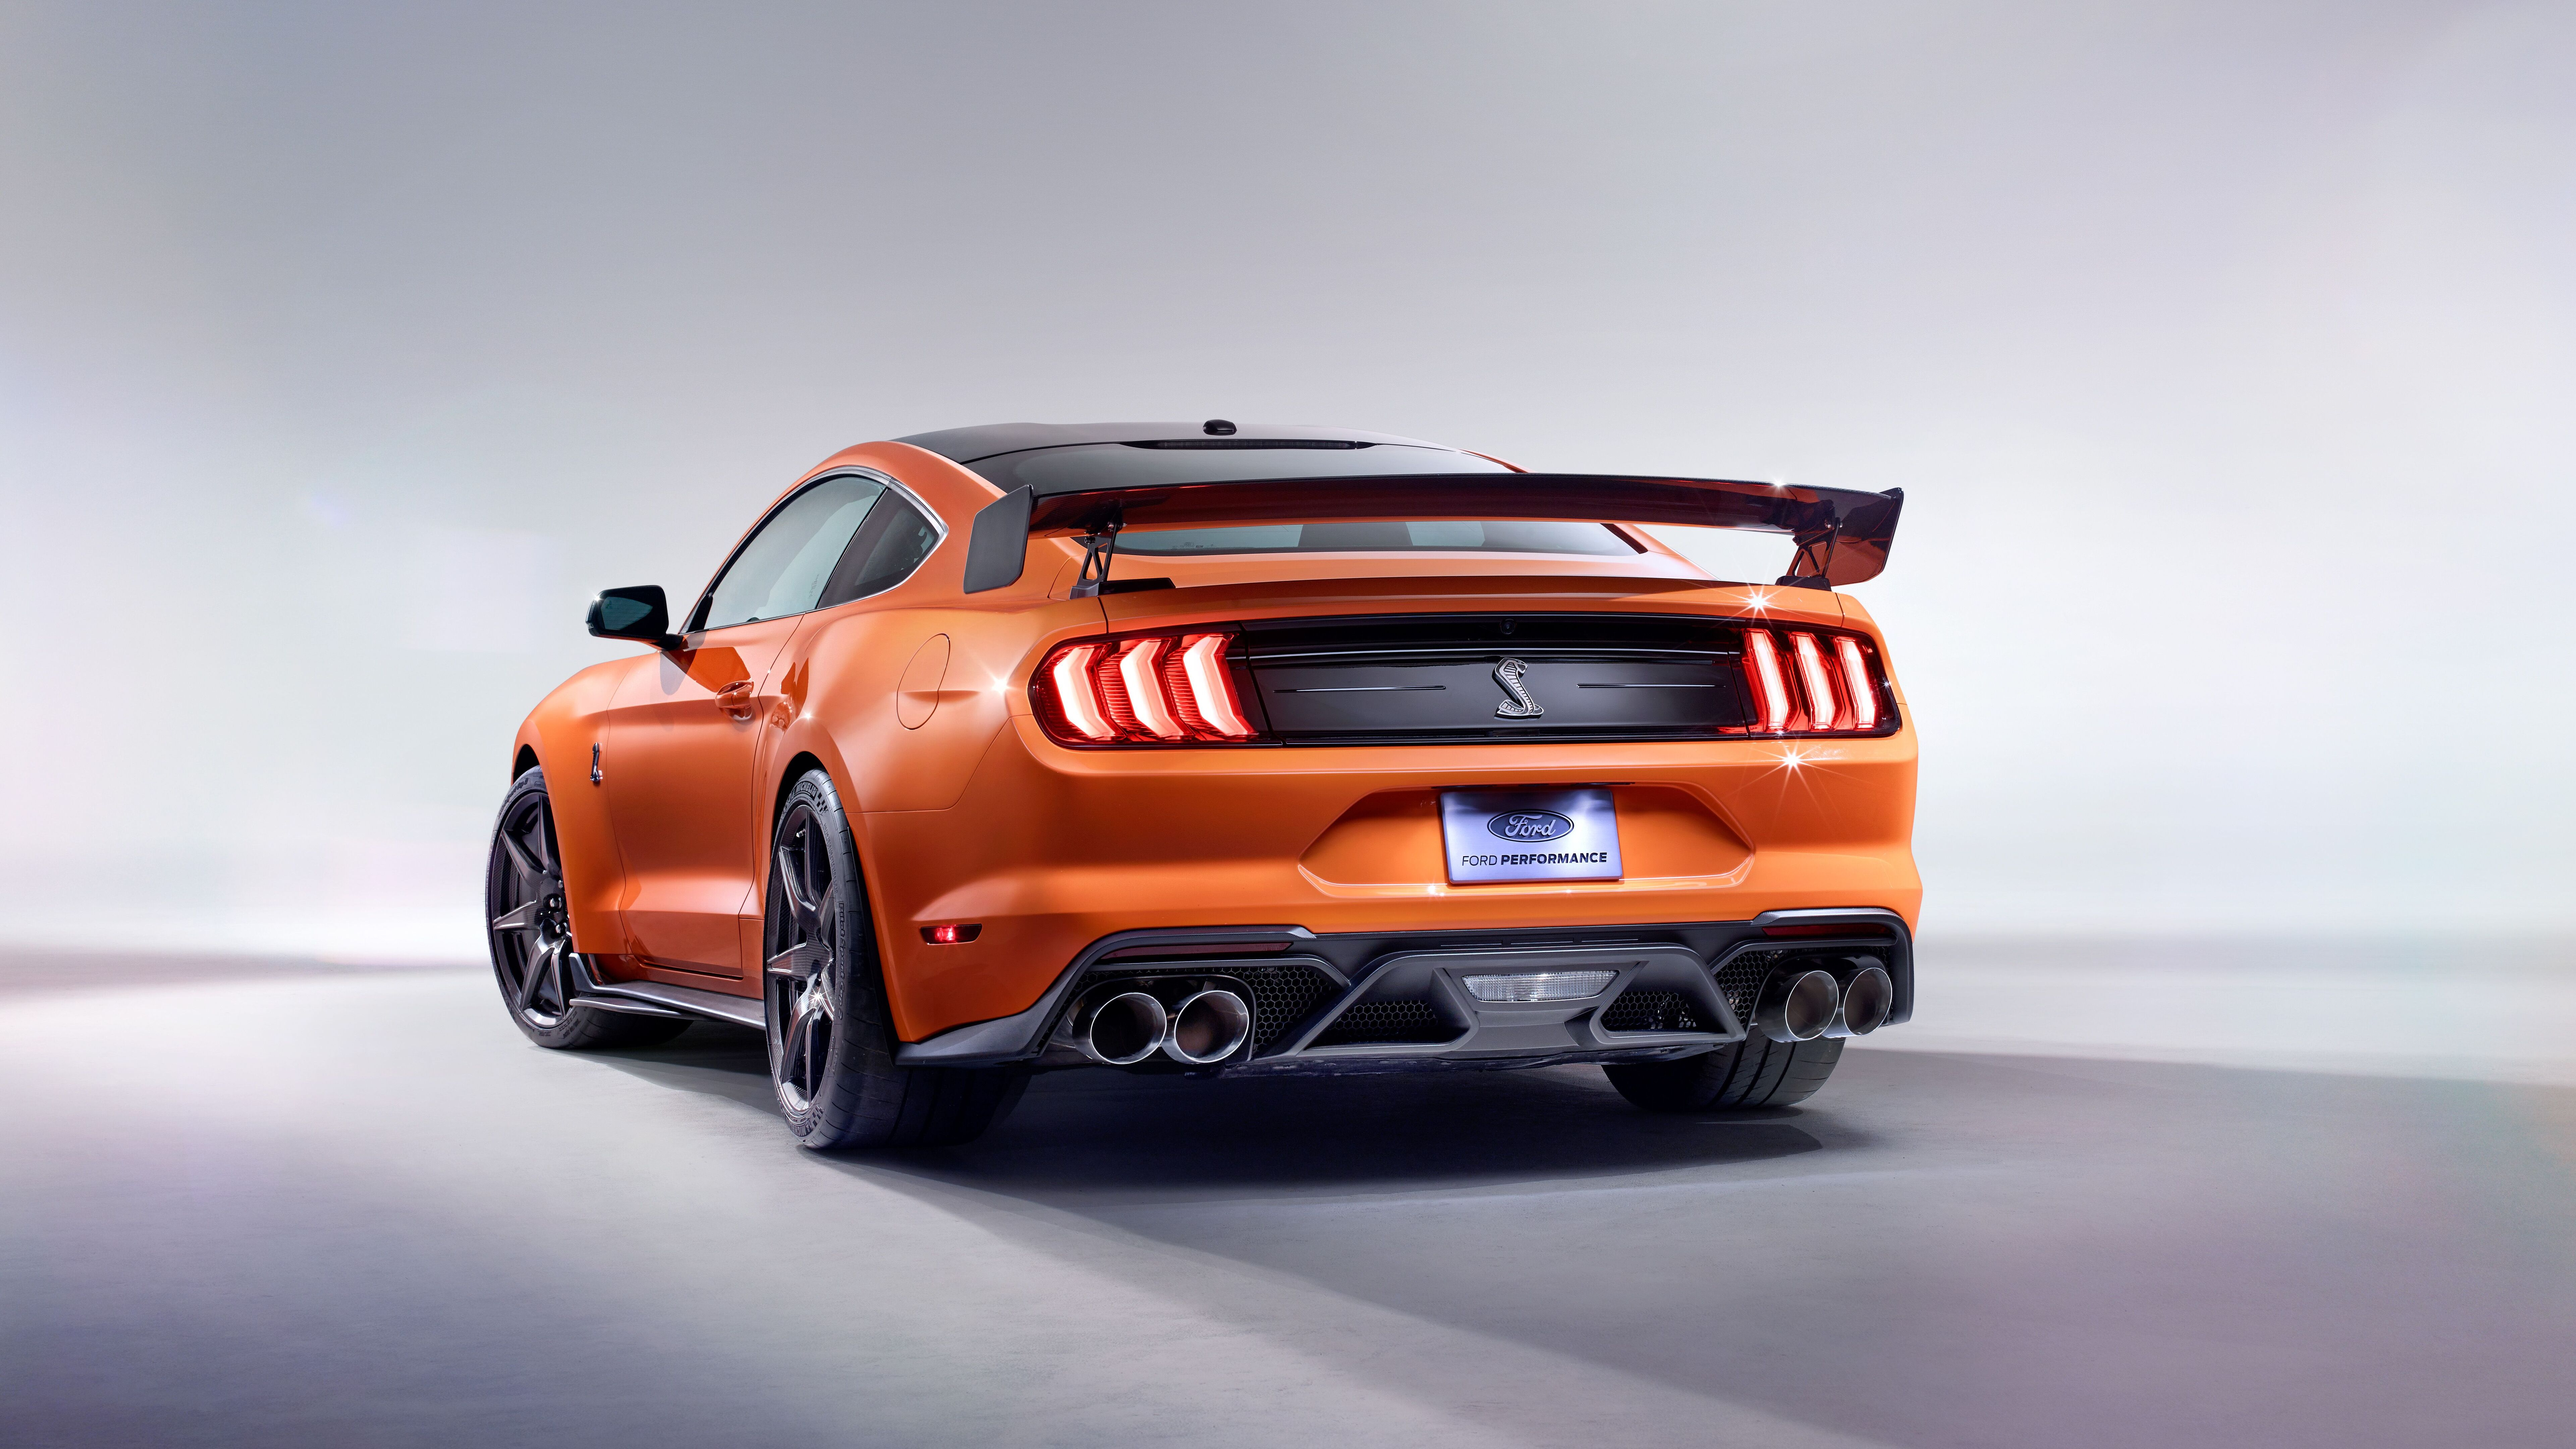 2020-ford-mustang-shelby-gt500-rear-t6.jpg